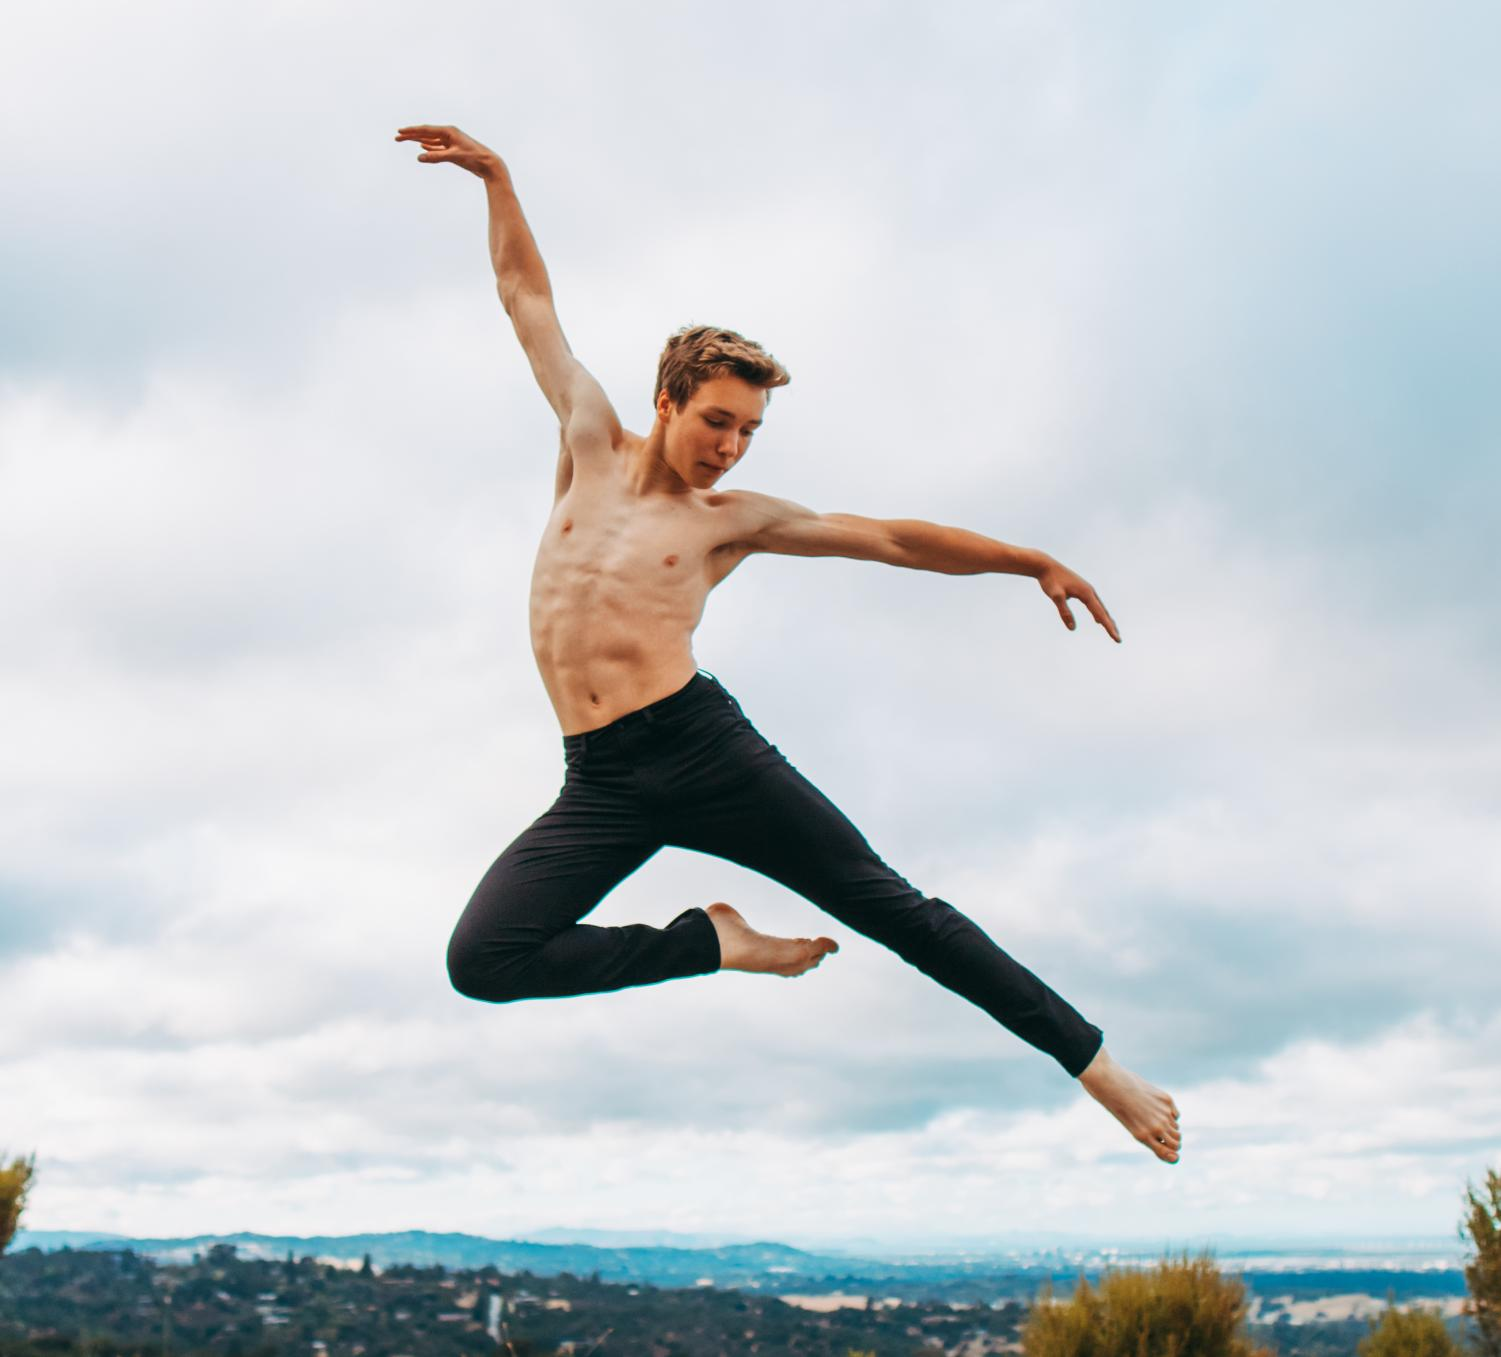 Junior Ezra Tock is one of the only male dancers at Los Altos. Despite being looked down upon by those who believe masculinity and ballet do not mesh with one another, Ezra continues to dance proudly and master his craft.